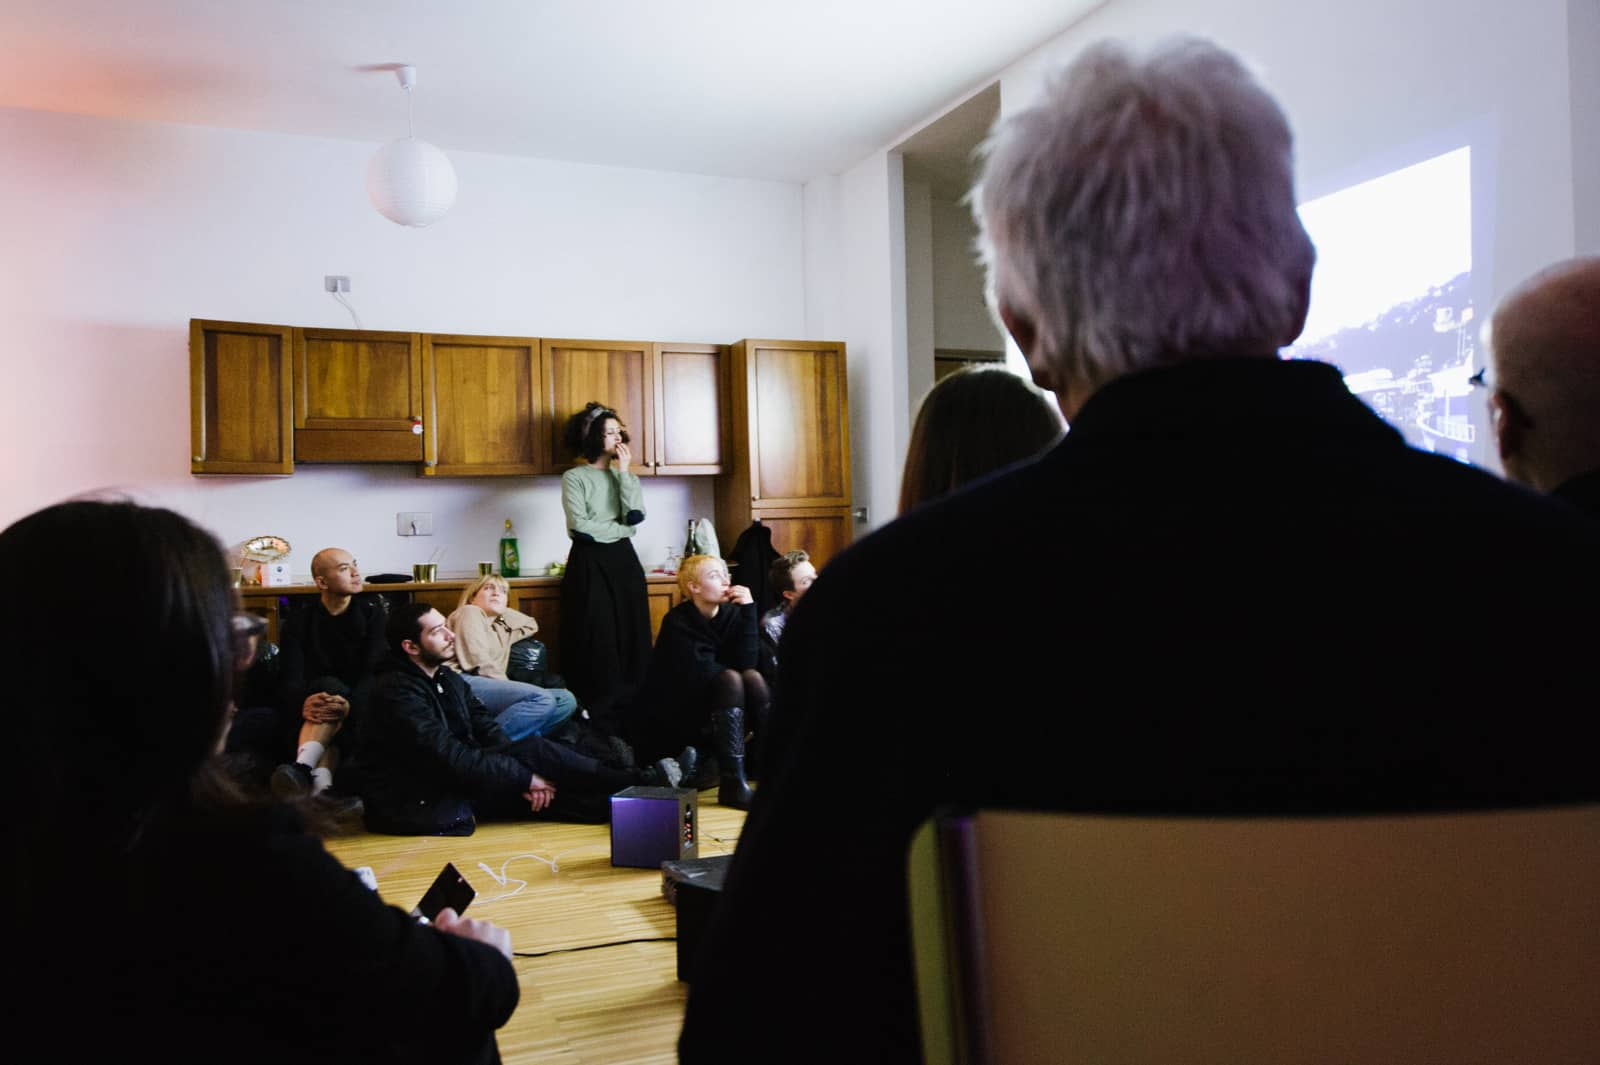 Screening by METASITU in Sergey's private apartment, 2018. Photo by Cristina Leoncini